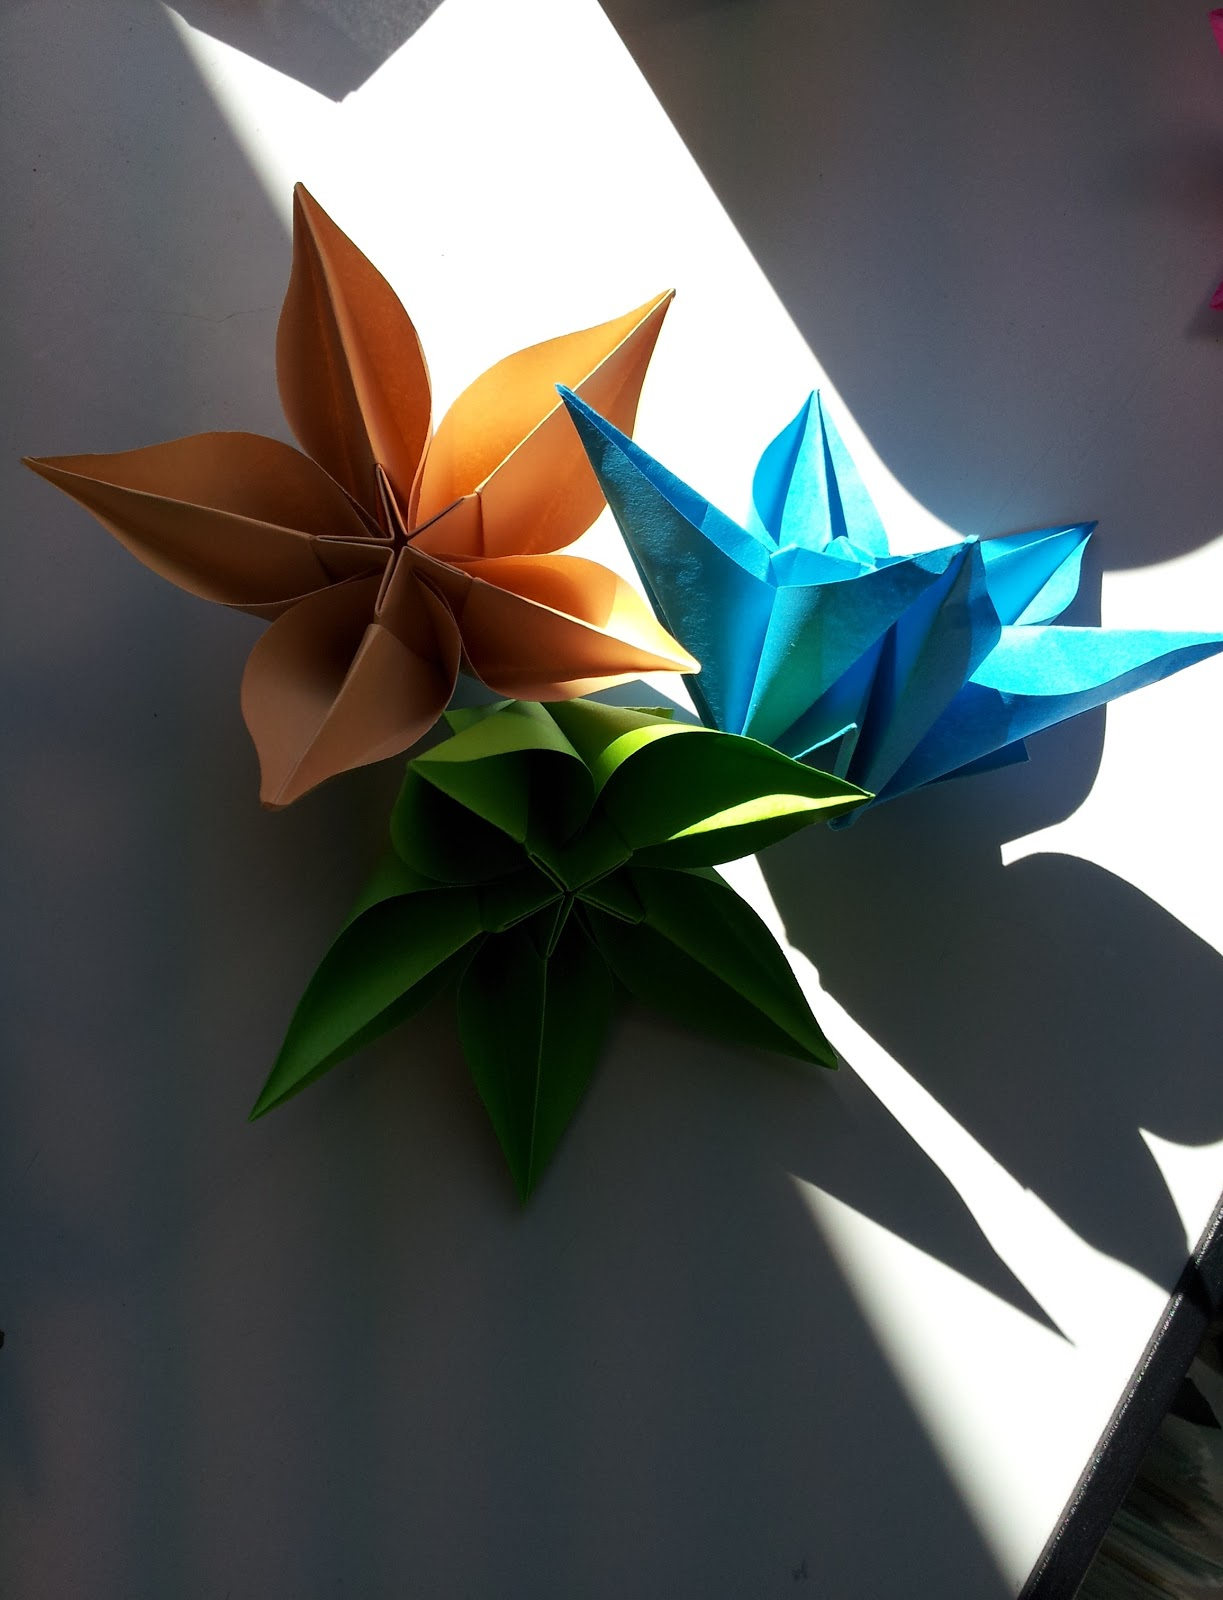 Paper moon paper flowers carambola flower instructions you should still be able to follow the instructions even if you dont speak german mightylinksfo